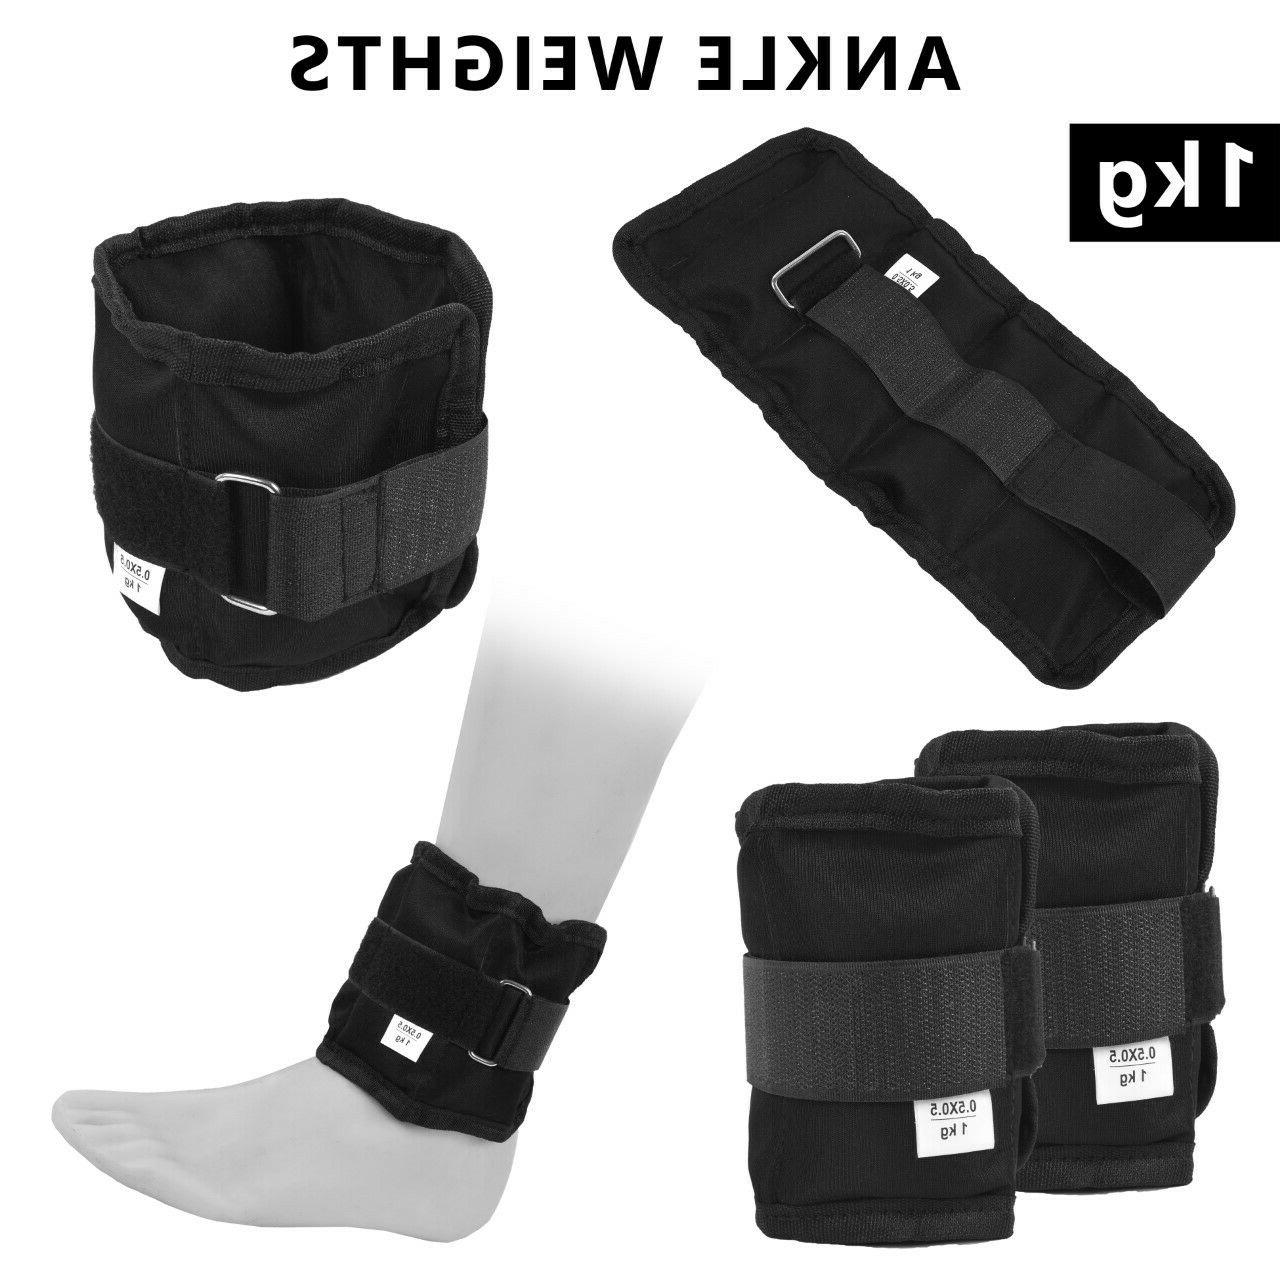 2fit adjustable ankle weights pair 1 kg